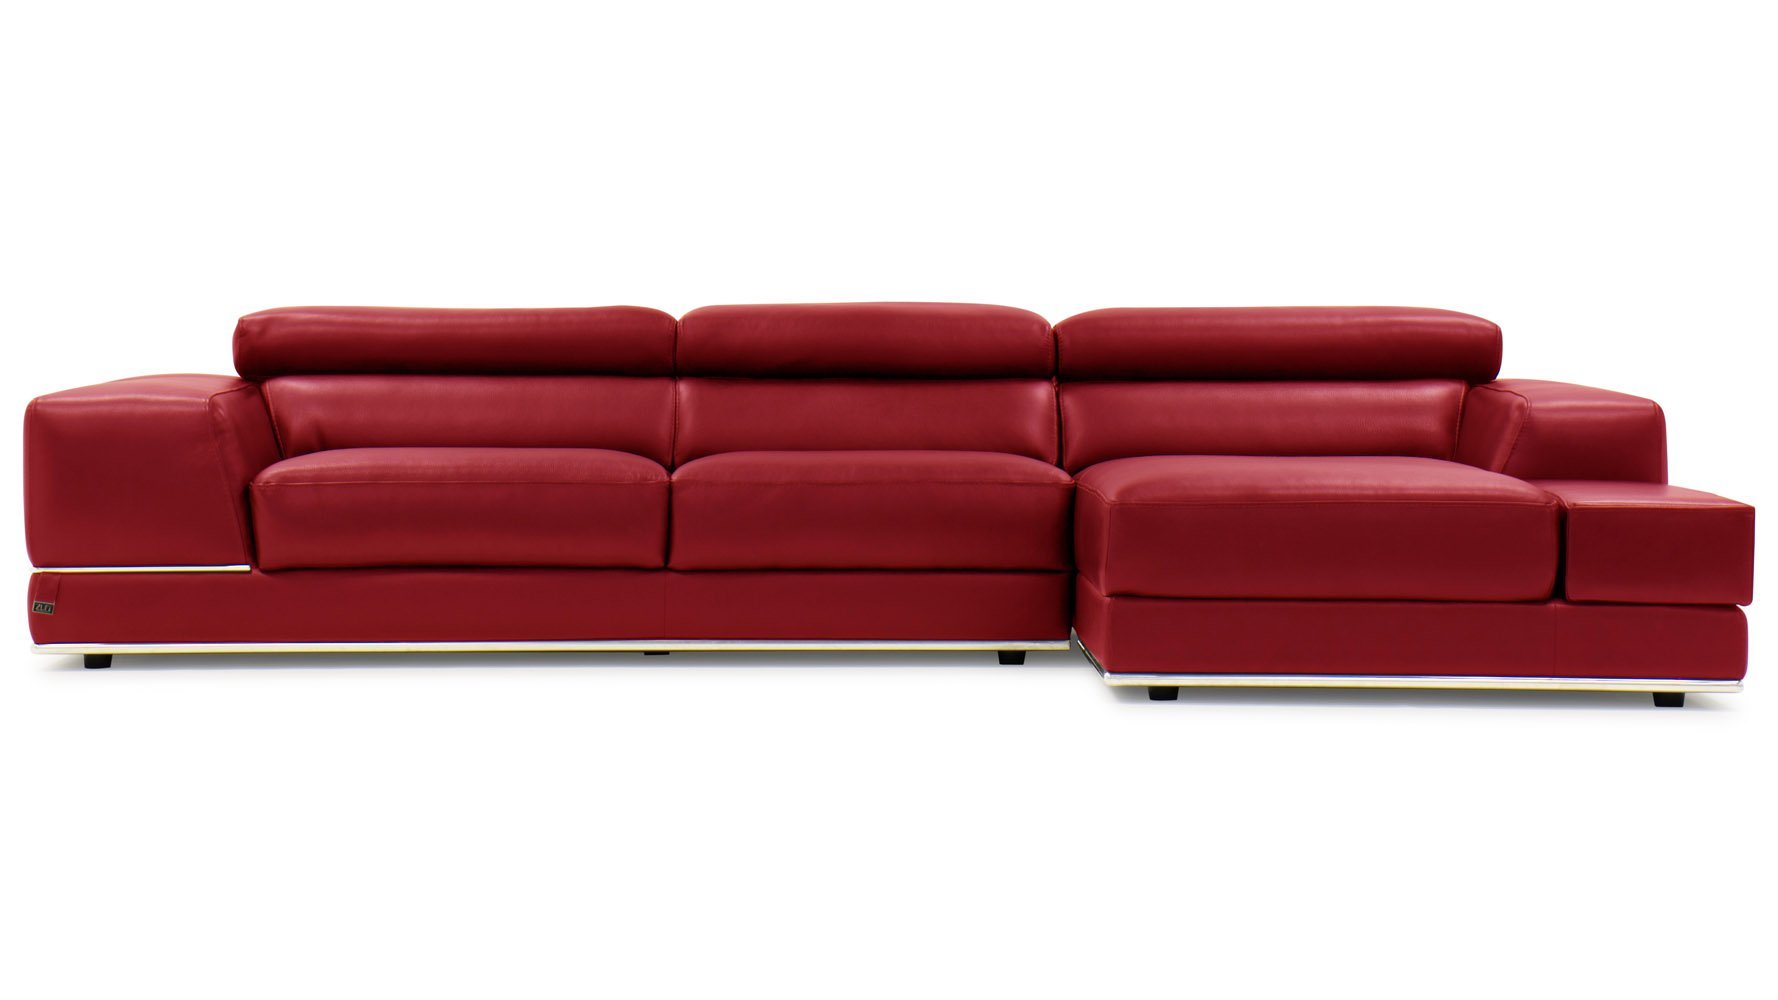 Cheap leather sectionals 2 van dyke sectional red for Red sectional sofas cheap